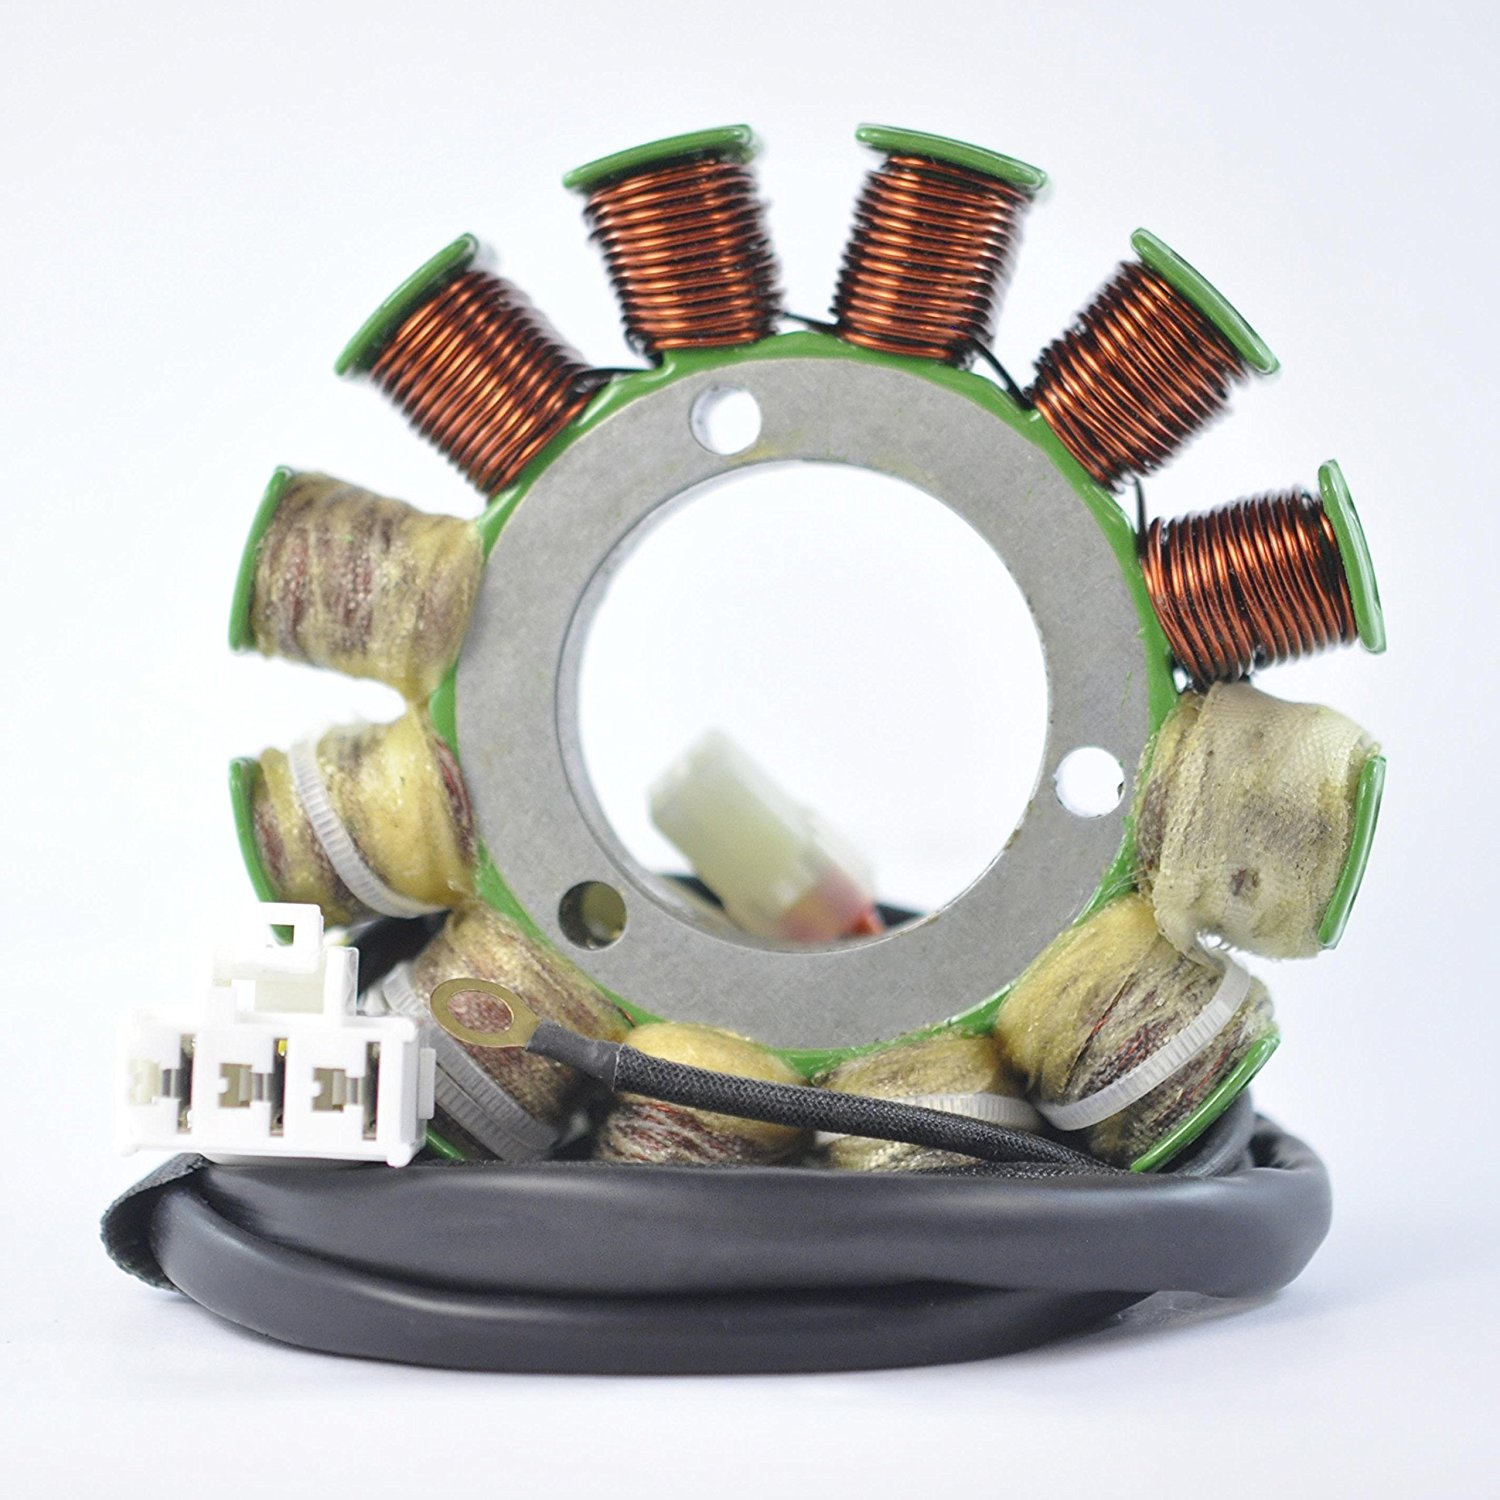 Stator for Arctic Cat Crossfire F1000 Firecat M1000 M8000 M6 600 Mountain Cat M8 800 Sno Pro T500 XF800 ZR8000 2007-2015 OEM Repl.# 3007-545 3007-623 3007-711 3007-693 3007-701 3007-447 3007-617